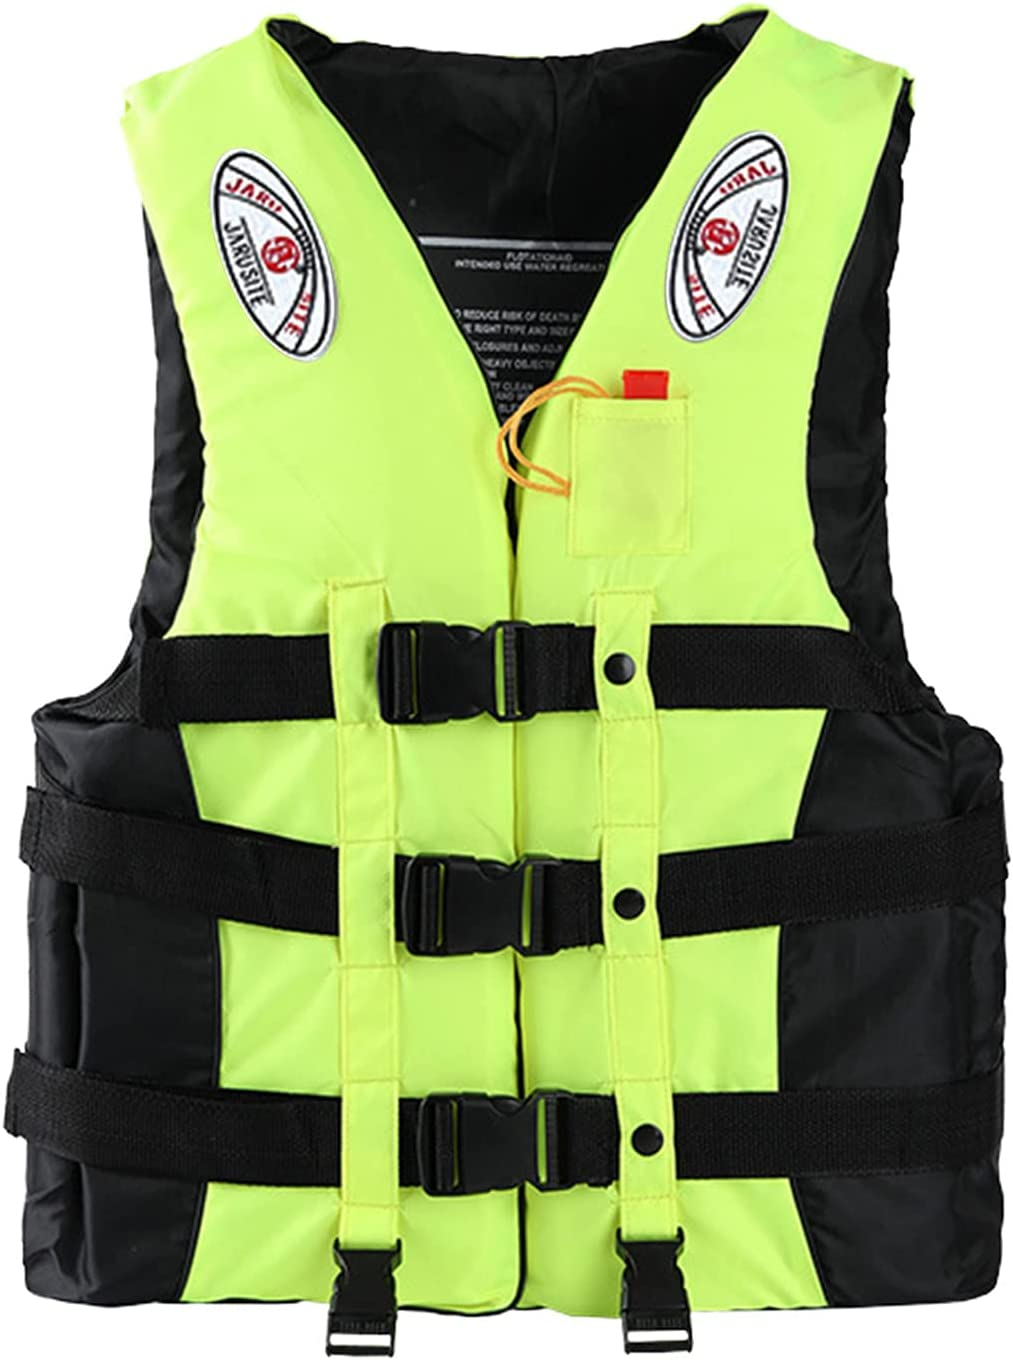 Lifevest Life Jackets for Adults Equipment Max 45% OFF S-XXXL Wate Max 59% OFF Swimming